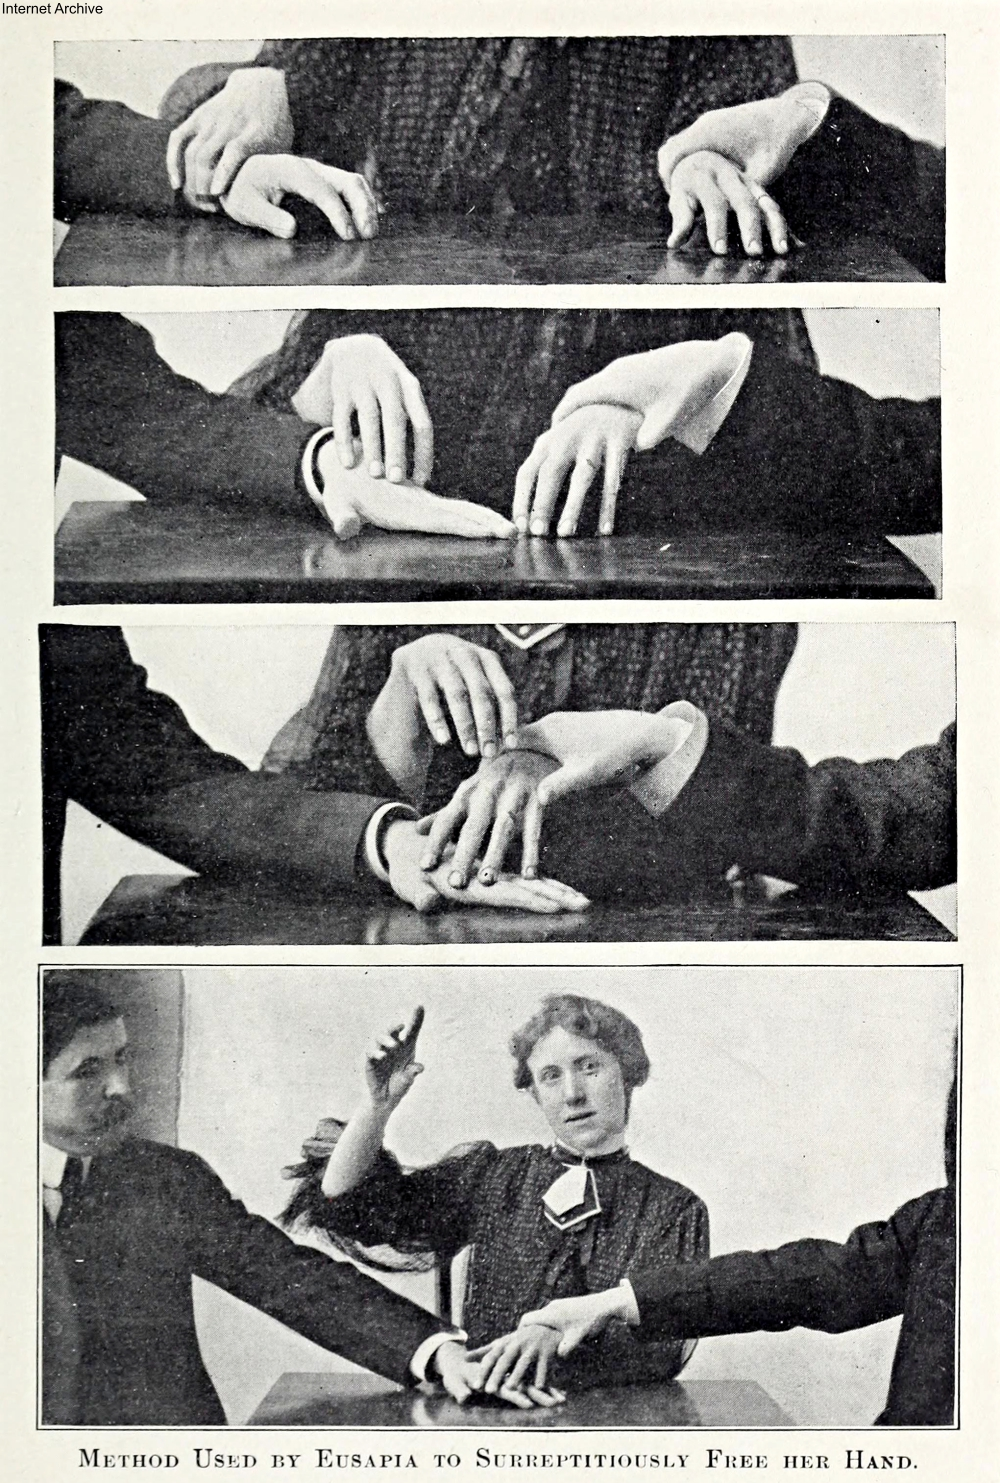 1907 book about psychics and fraud